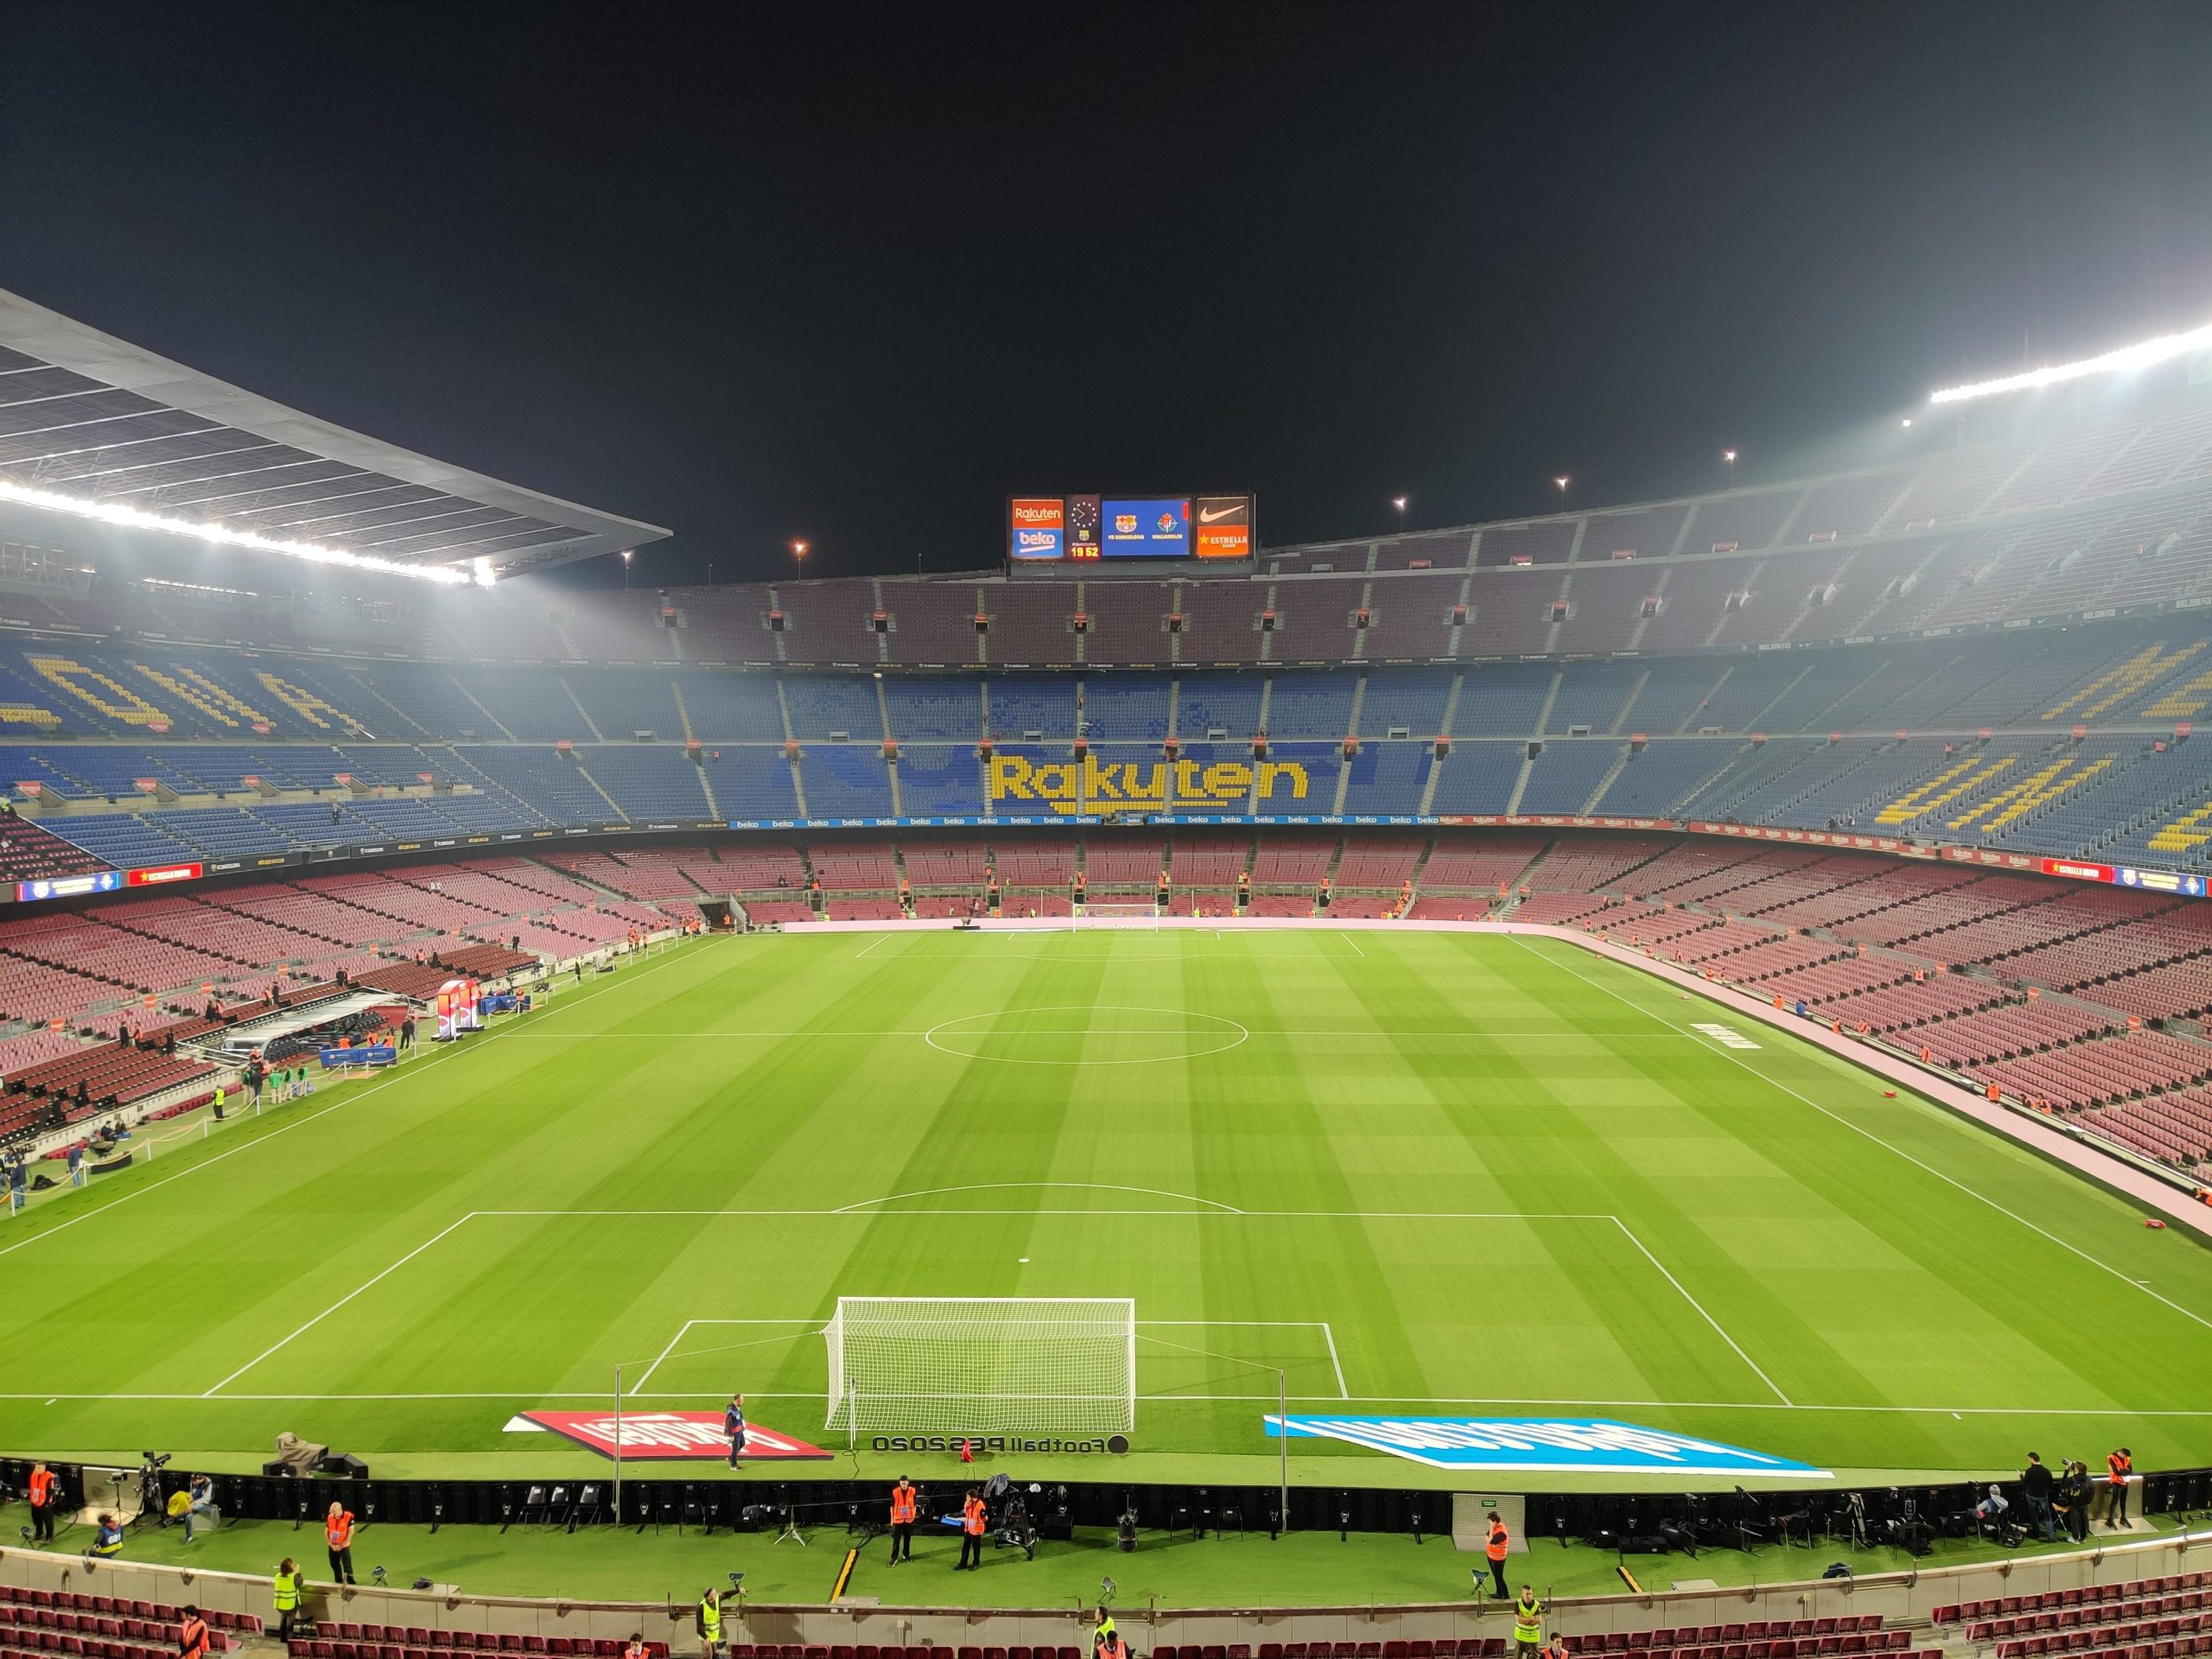 Camp Nou, the home ground of FC Barcelona / OMAR HAWWASH/BLAUGRANAGRAM